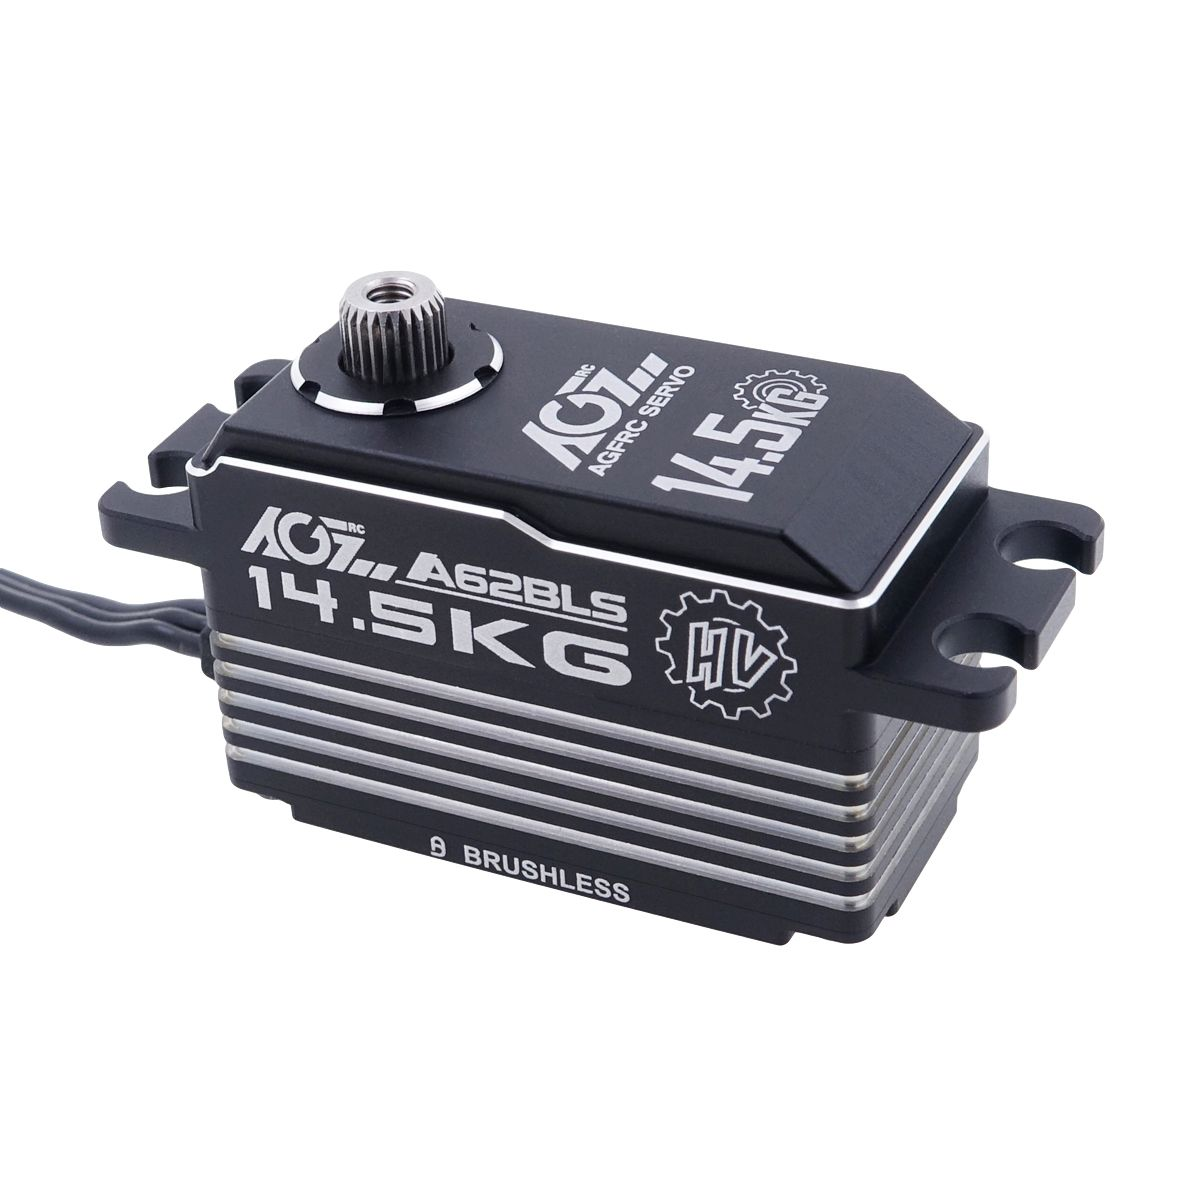 AGFRC A62BLS Fast Cooking Heat Sink Case 14.5KG 0.062S Brushless Low Profile Servo For 1/10 RC Car Boat Aircraft